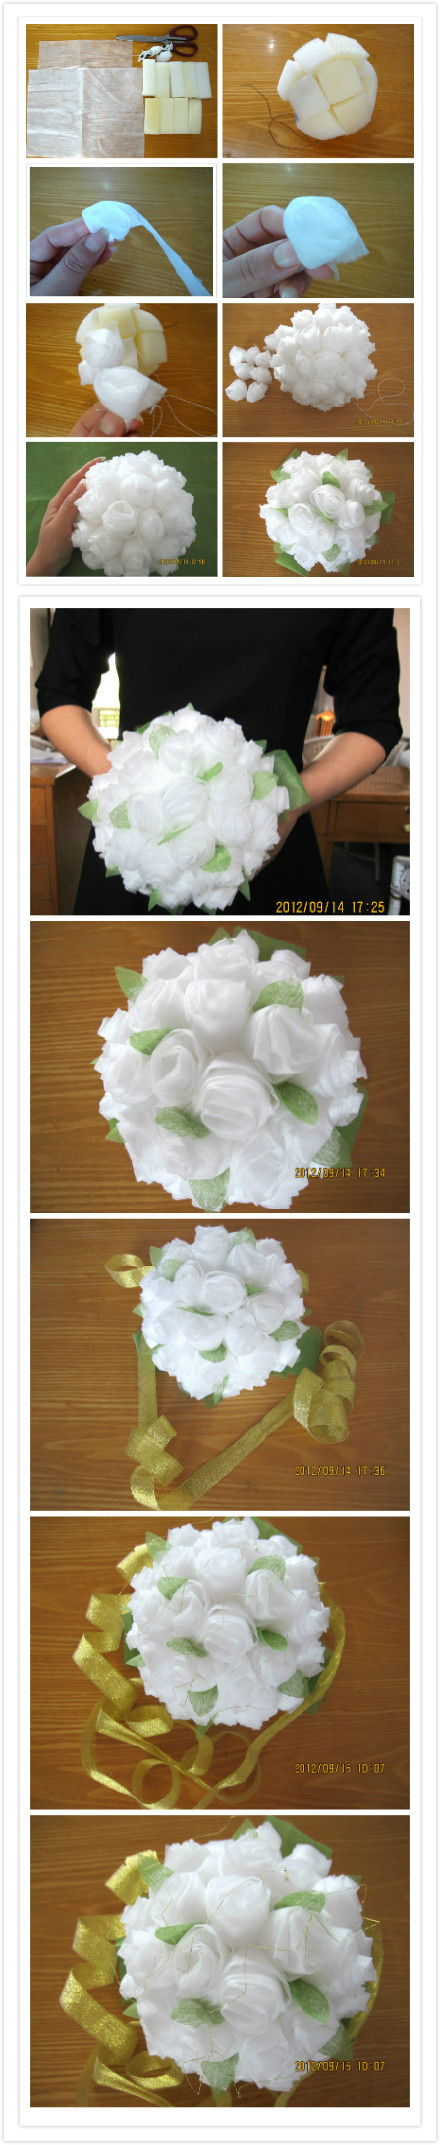 How to make Baby Tissue Paper Flower Bouquet step by step DIY tutorial instructions